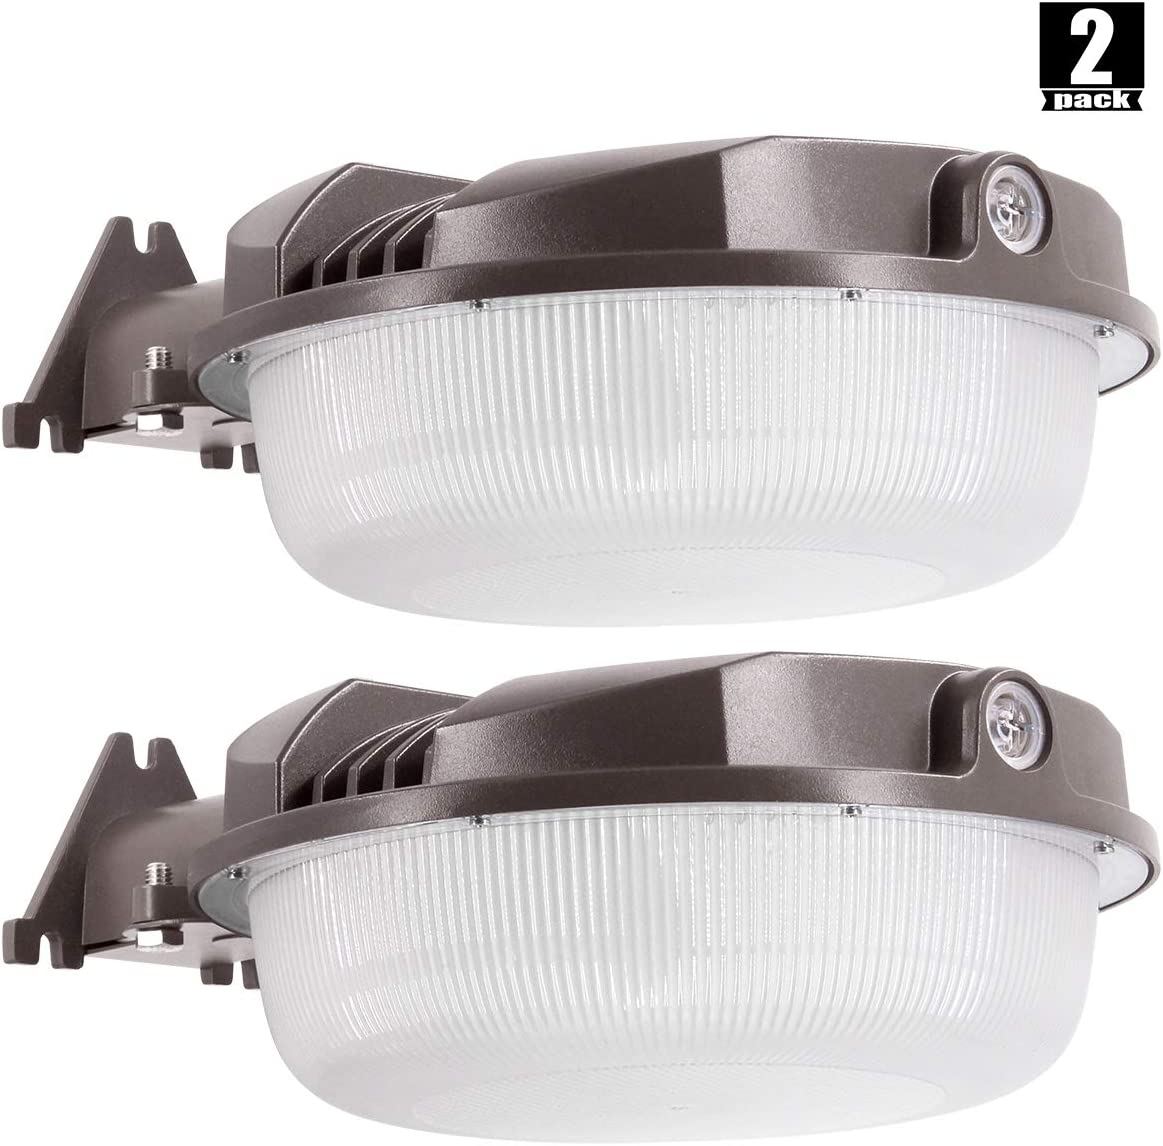 2Pack LED Yard Light 70W Photocell Included ,LED Dusk to Dawn 250-1000W Equiv. ,5000K Daylight Floodlight, Yard Light for Area Lighting, Wet Location Available50K